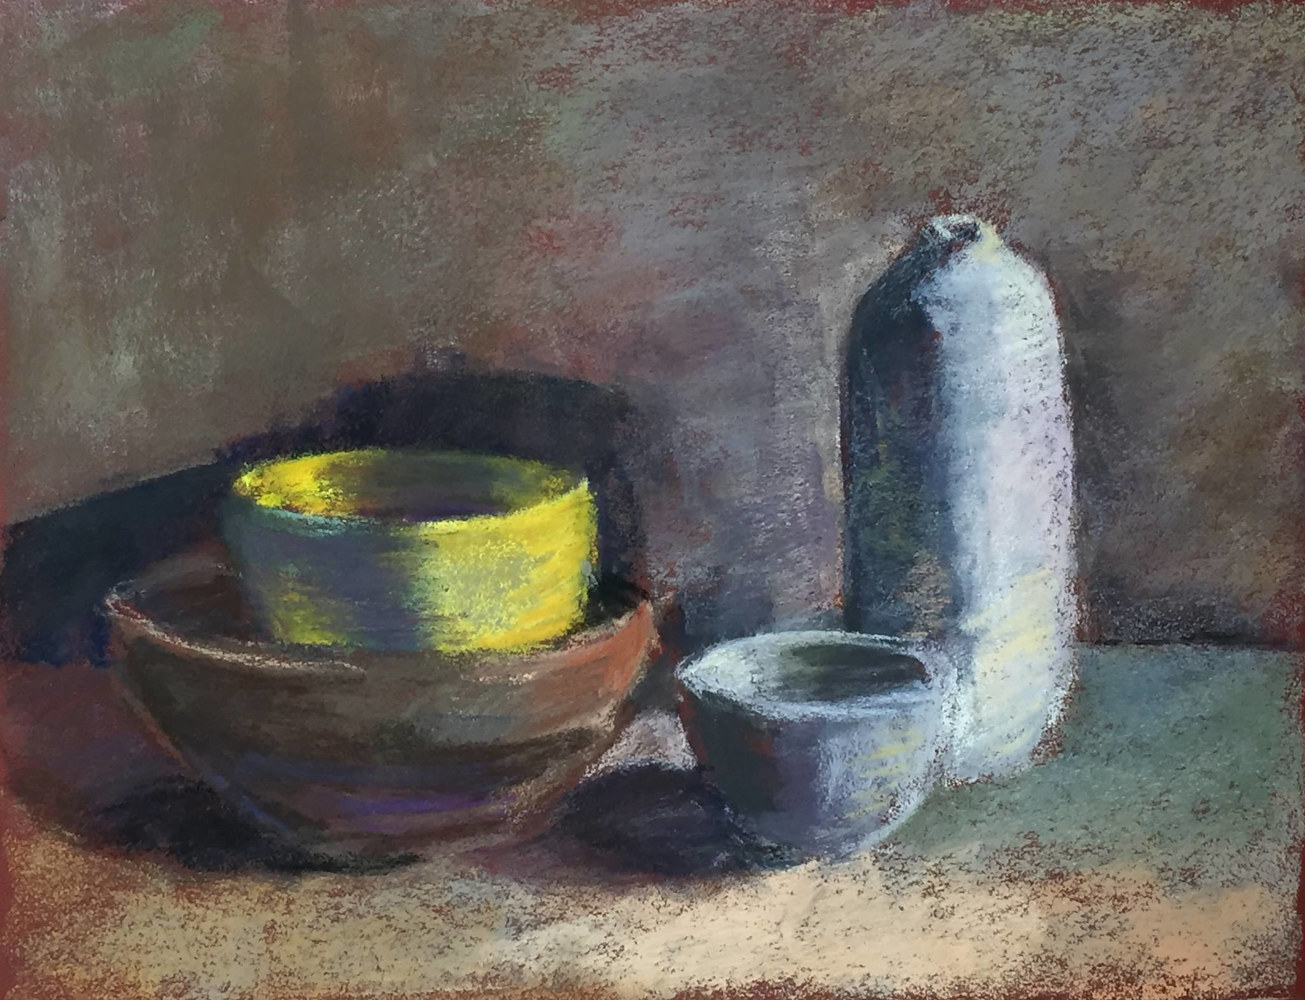 Still Life With Yellow Bowl by Cynthia Nockold